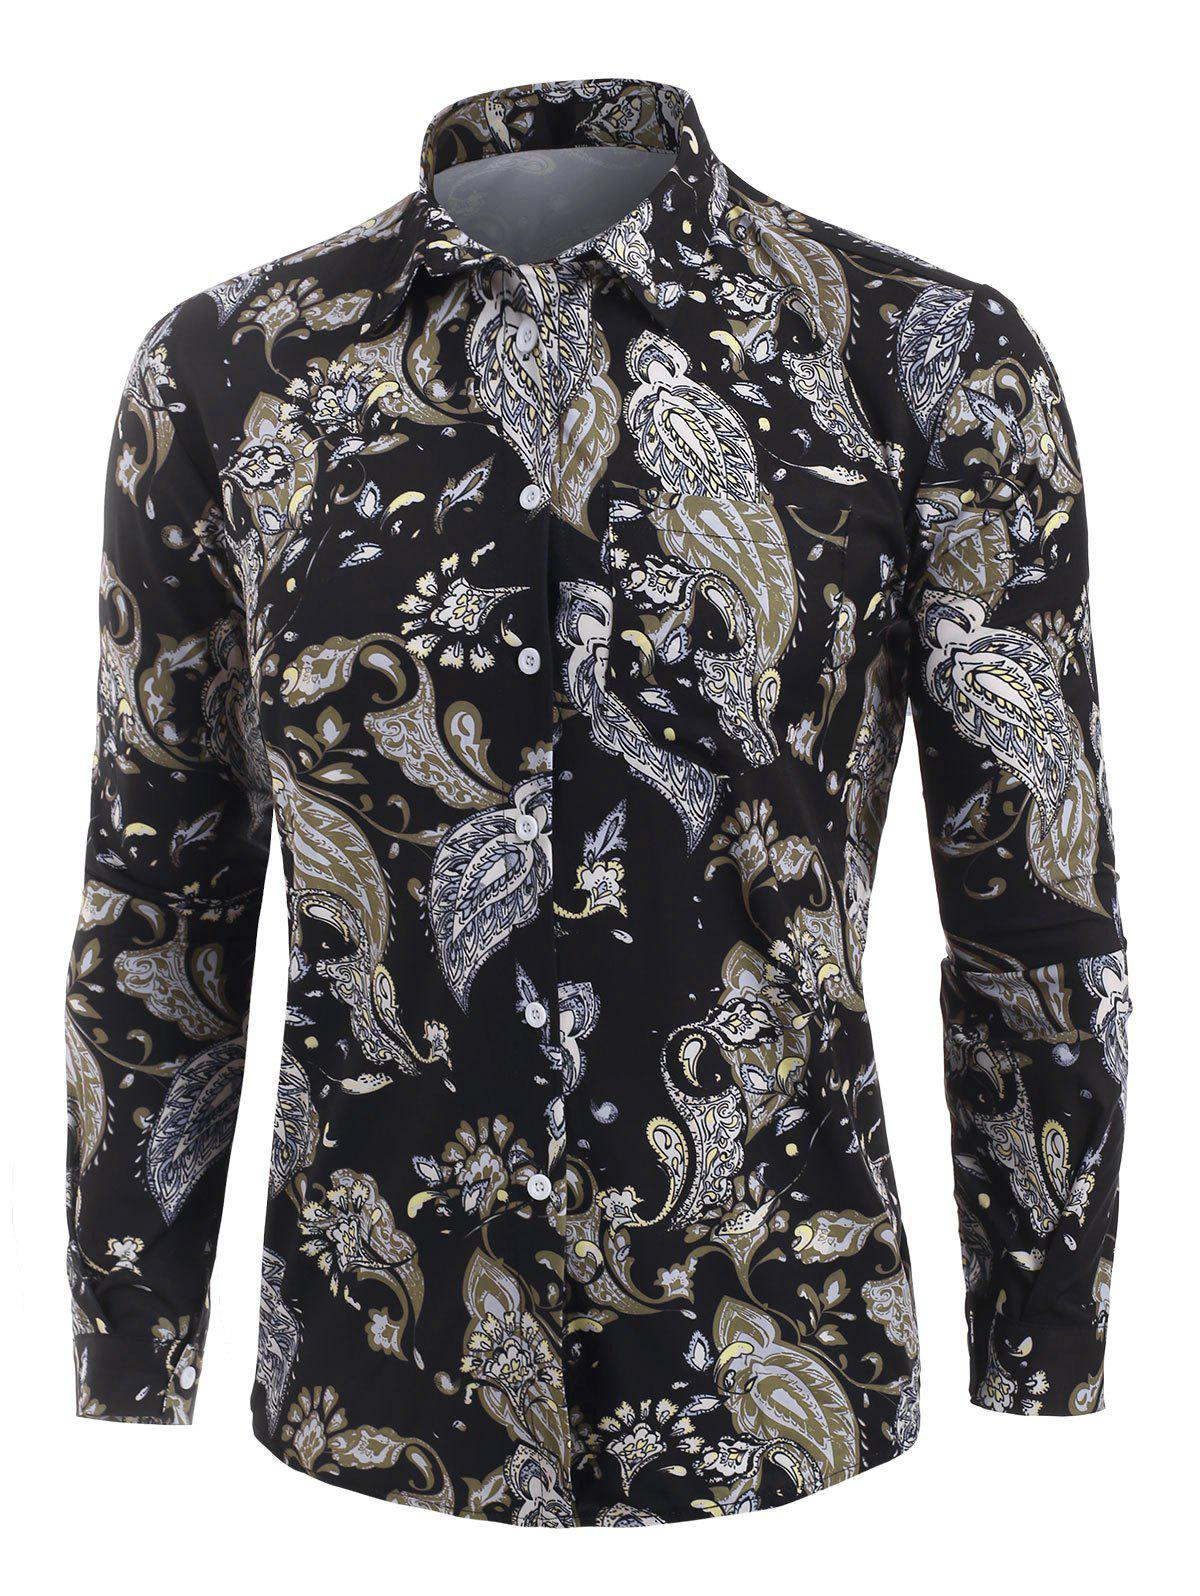 Unique Flower Vintage Print Long Sleeve Shirt